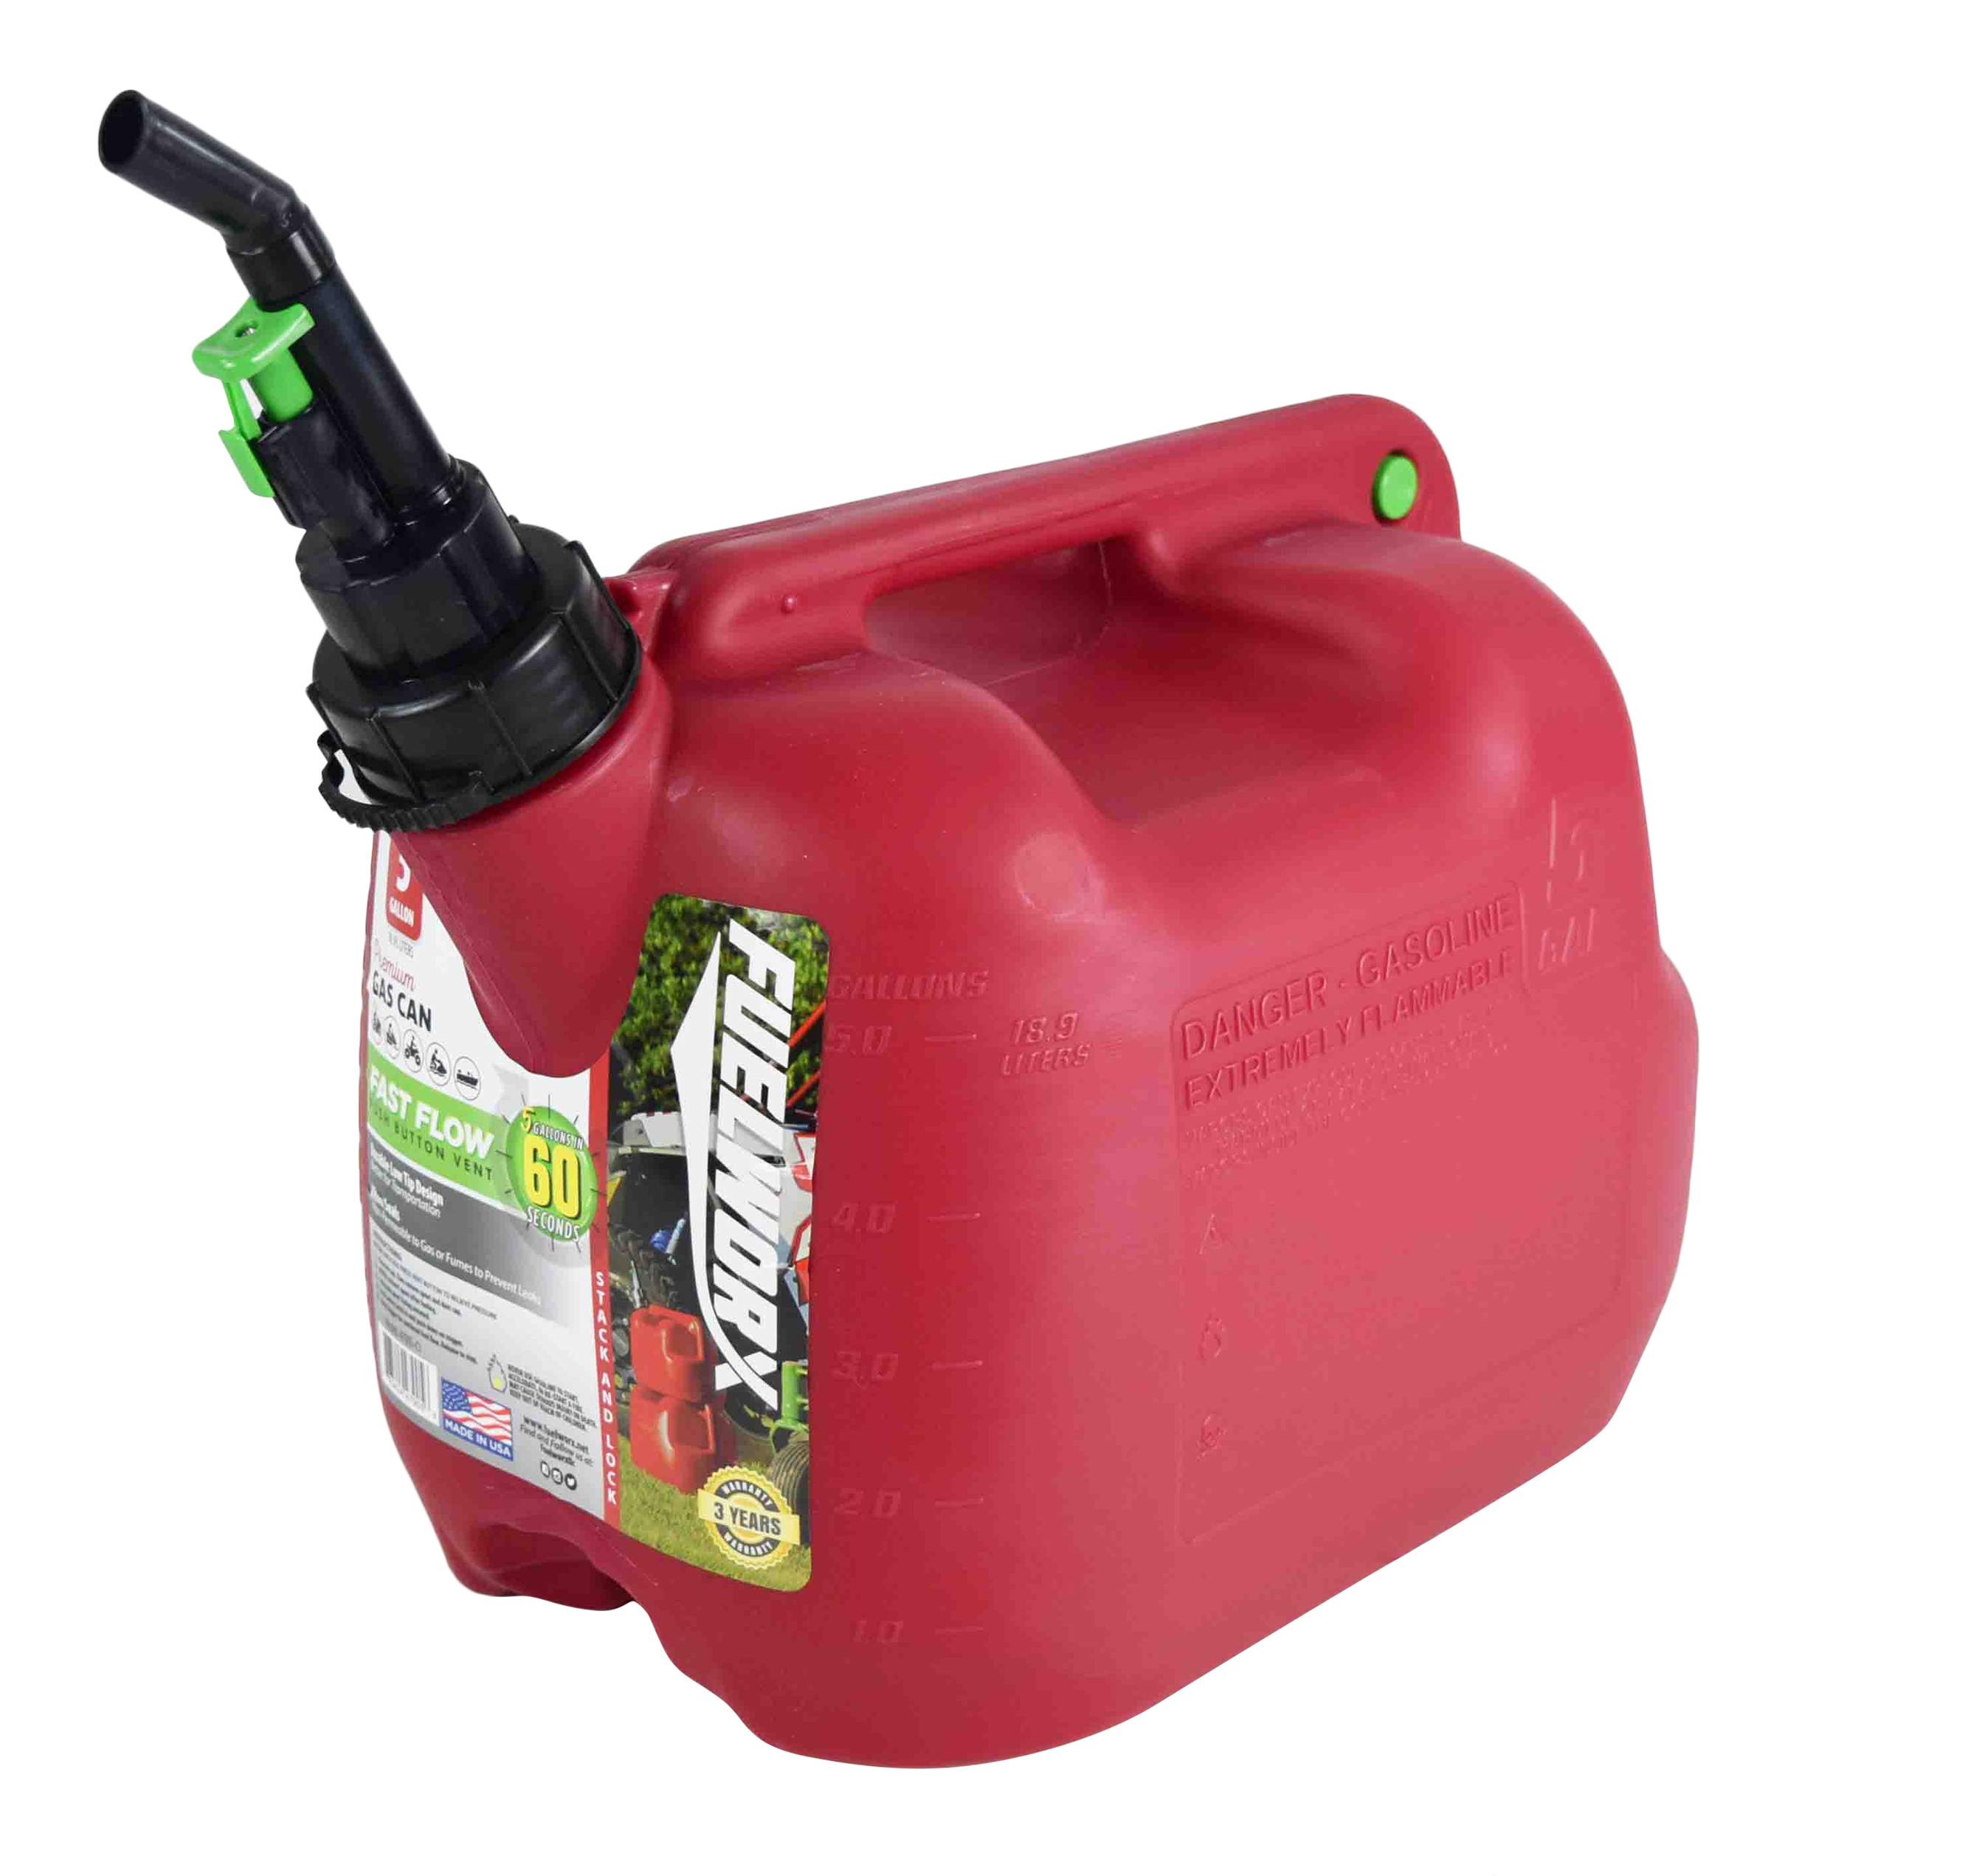 Fuelworx-Red-5-Gallon-Stackable-Fast-Pour-Gas-Fuel-Can-CARB-Compliant-Made-in-The-USA-5-Gallon-Gas-Can-2-Pack-image-4